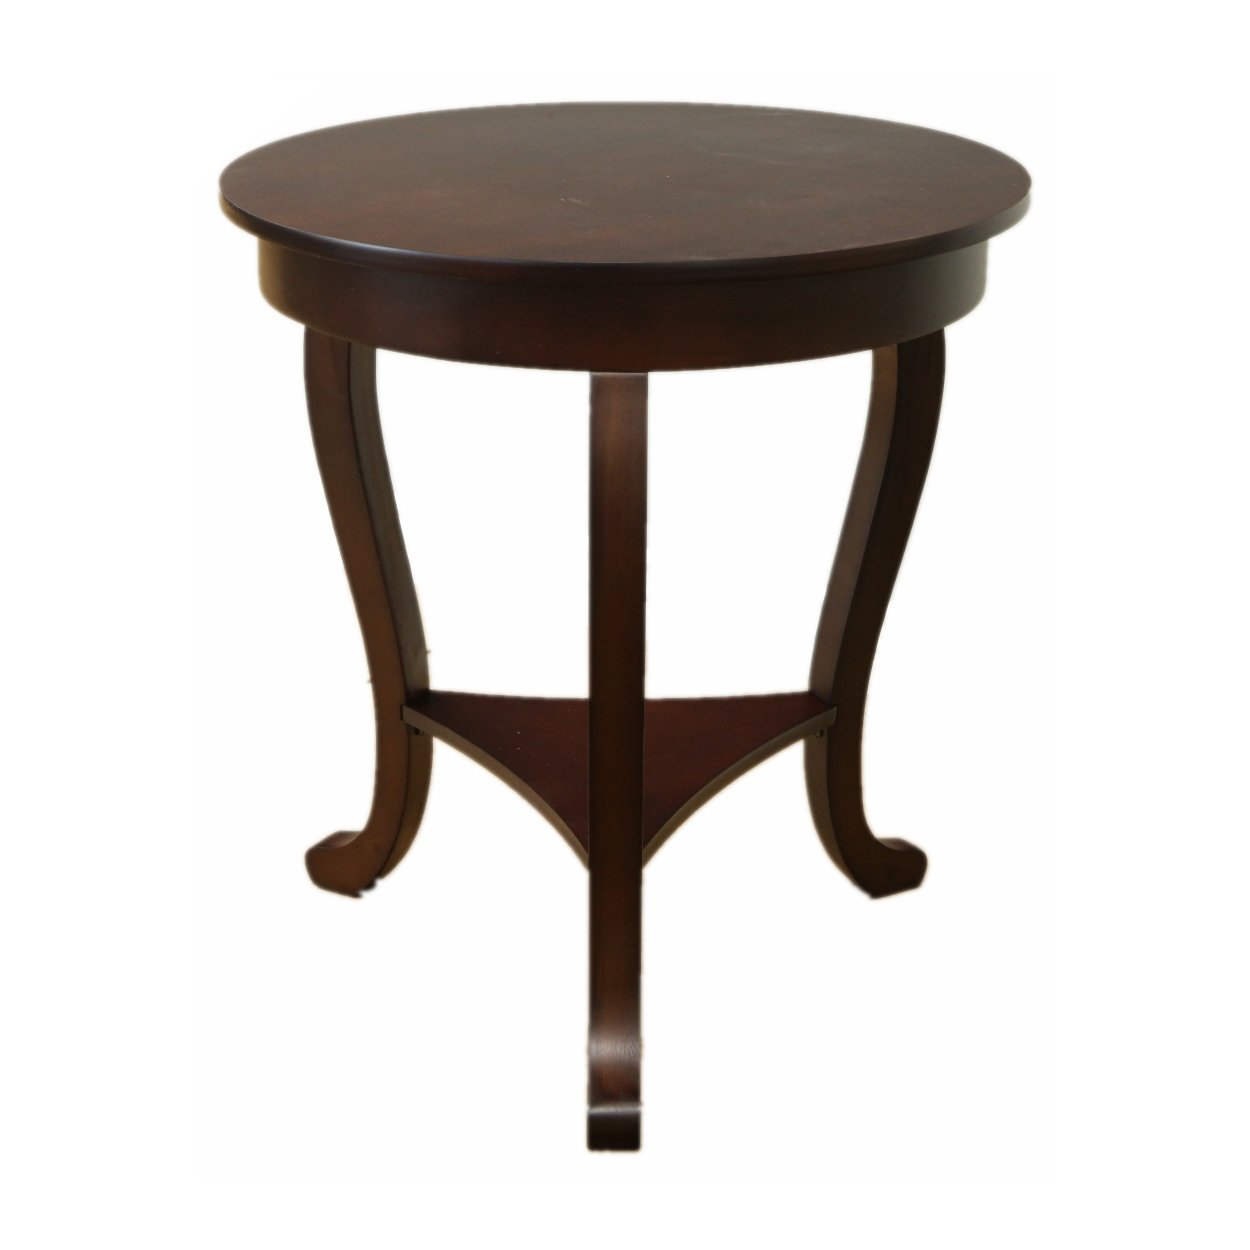 megaware furniture large burl accent table atg skinny knurl round tables small barn door dimensions counter height dining set silver bedside red and black end big coffee kmart